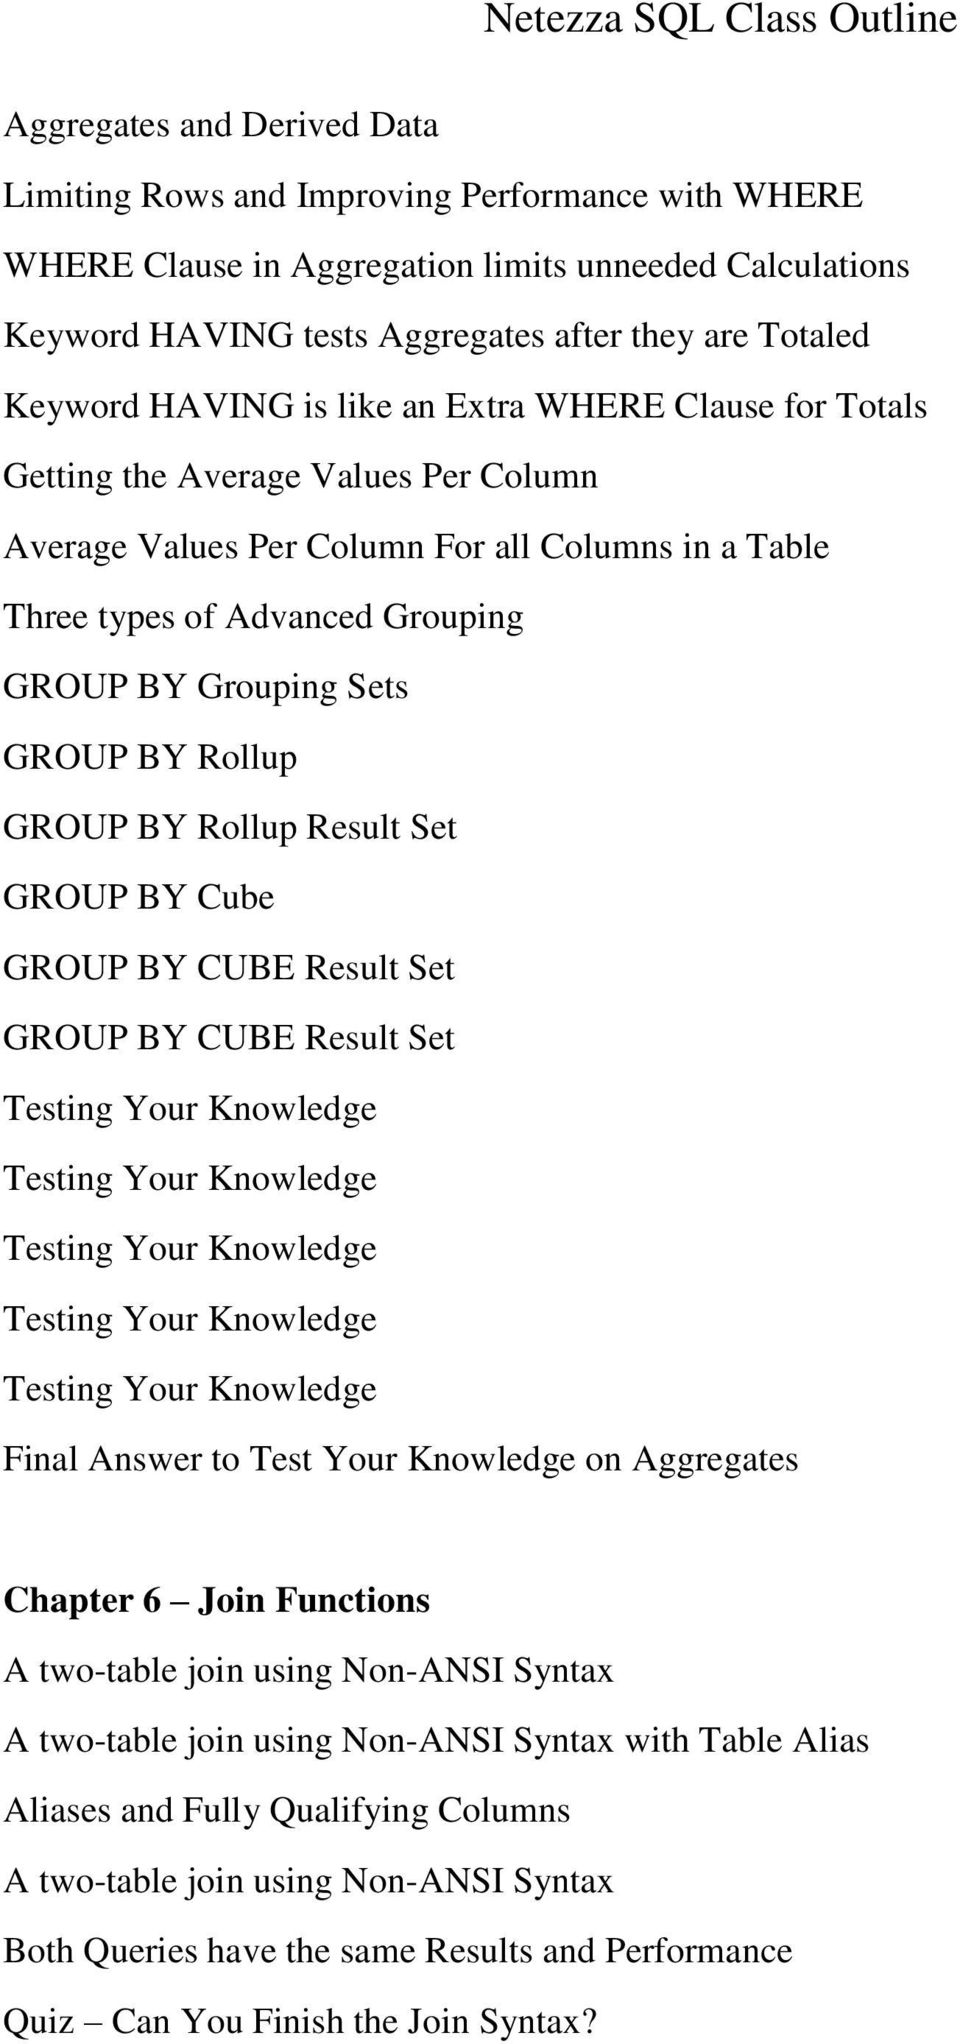 GROUP BY Rollup GROUP BY Rollup Result Set GROUP BY Cube GROUP BY CUBE Result Set GROUP BY CUBE Result Set Testing Your Knowledge Testing Your Knowledge Testing Your Knowledge Testing Your Knowledge